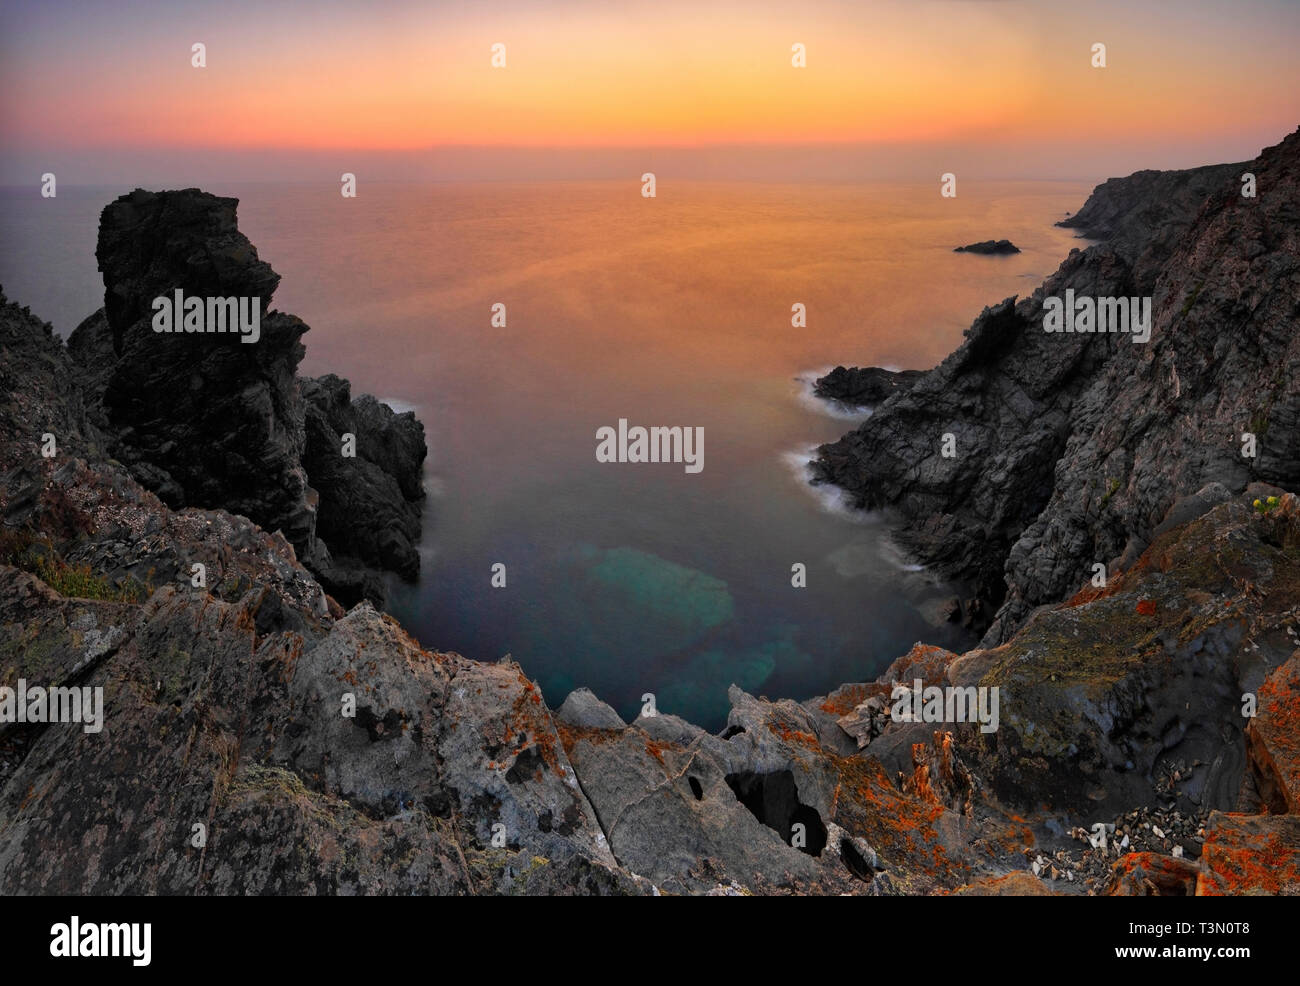 The rocky coast of Capo Falcone at sunset. Capo Falcone is a rocky promontory at the north-western tip of Sardinia, Italy, right in face of the Island - Stock Image